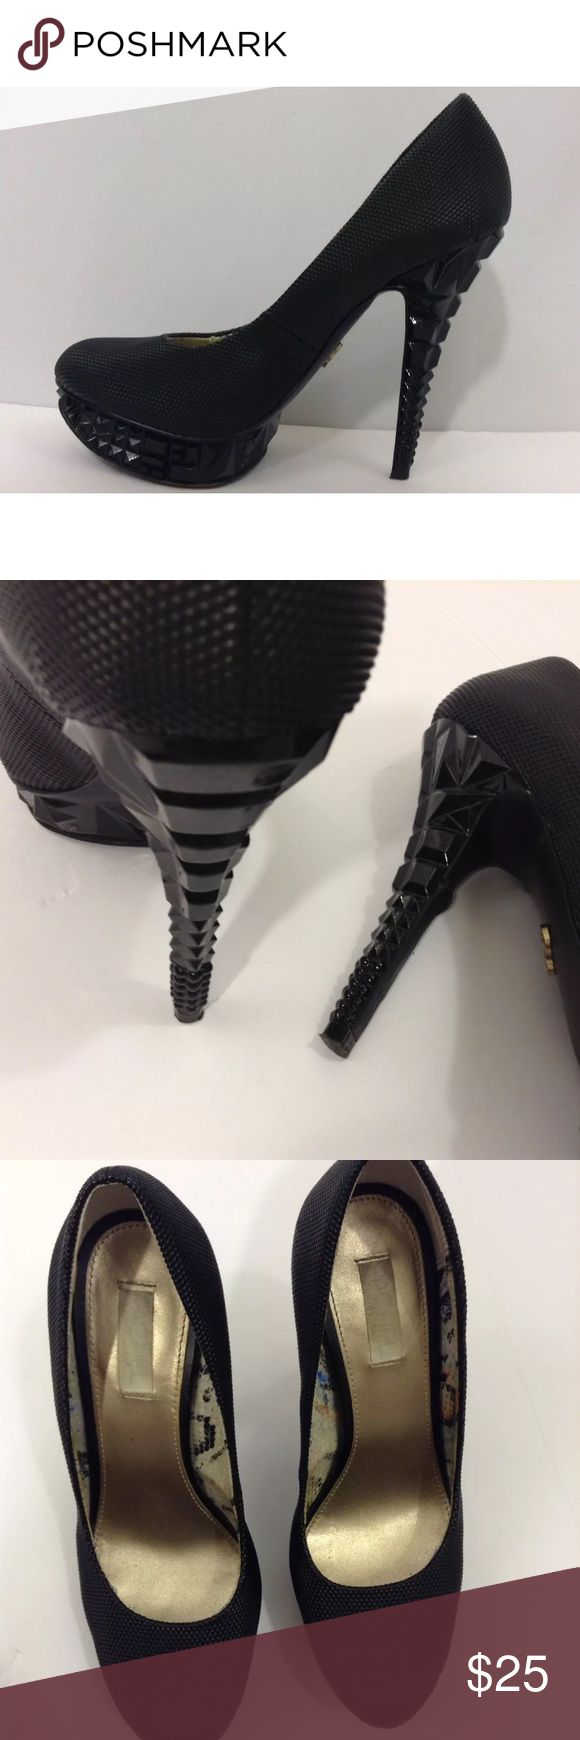 "Rachel Roy Rfkalyssa Black  5"" Platform Heels -6.5 Heel is approximately 5"" Some mild damage ti the heel & some scuffing - pleas see photos Please don't hesitate to ask for more information or photos if needed! Thank you 😊 RACHEL Rachel Roy Shoes Heels"